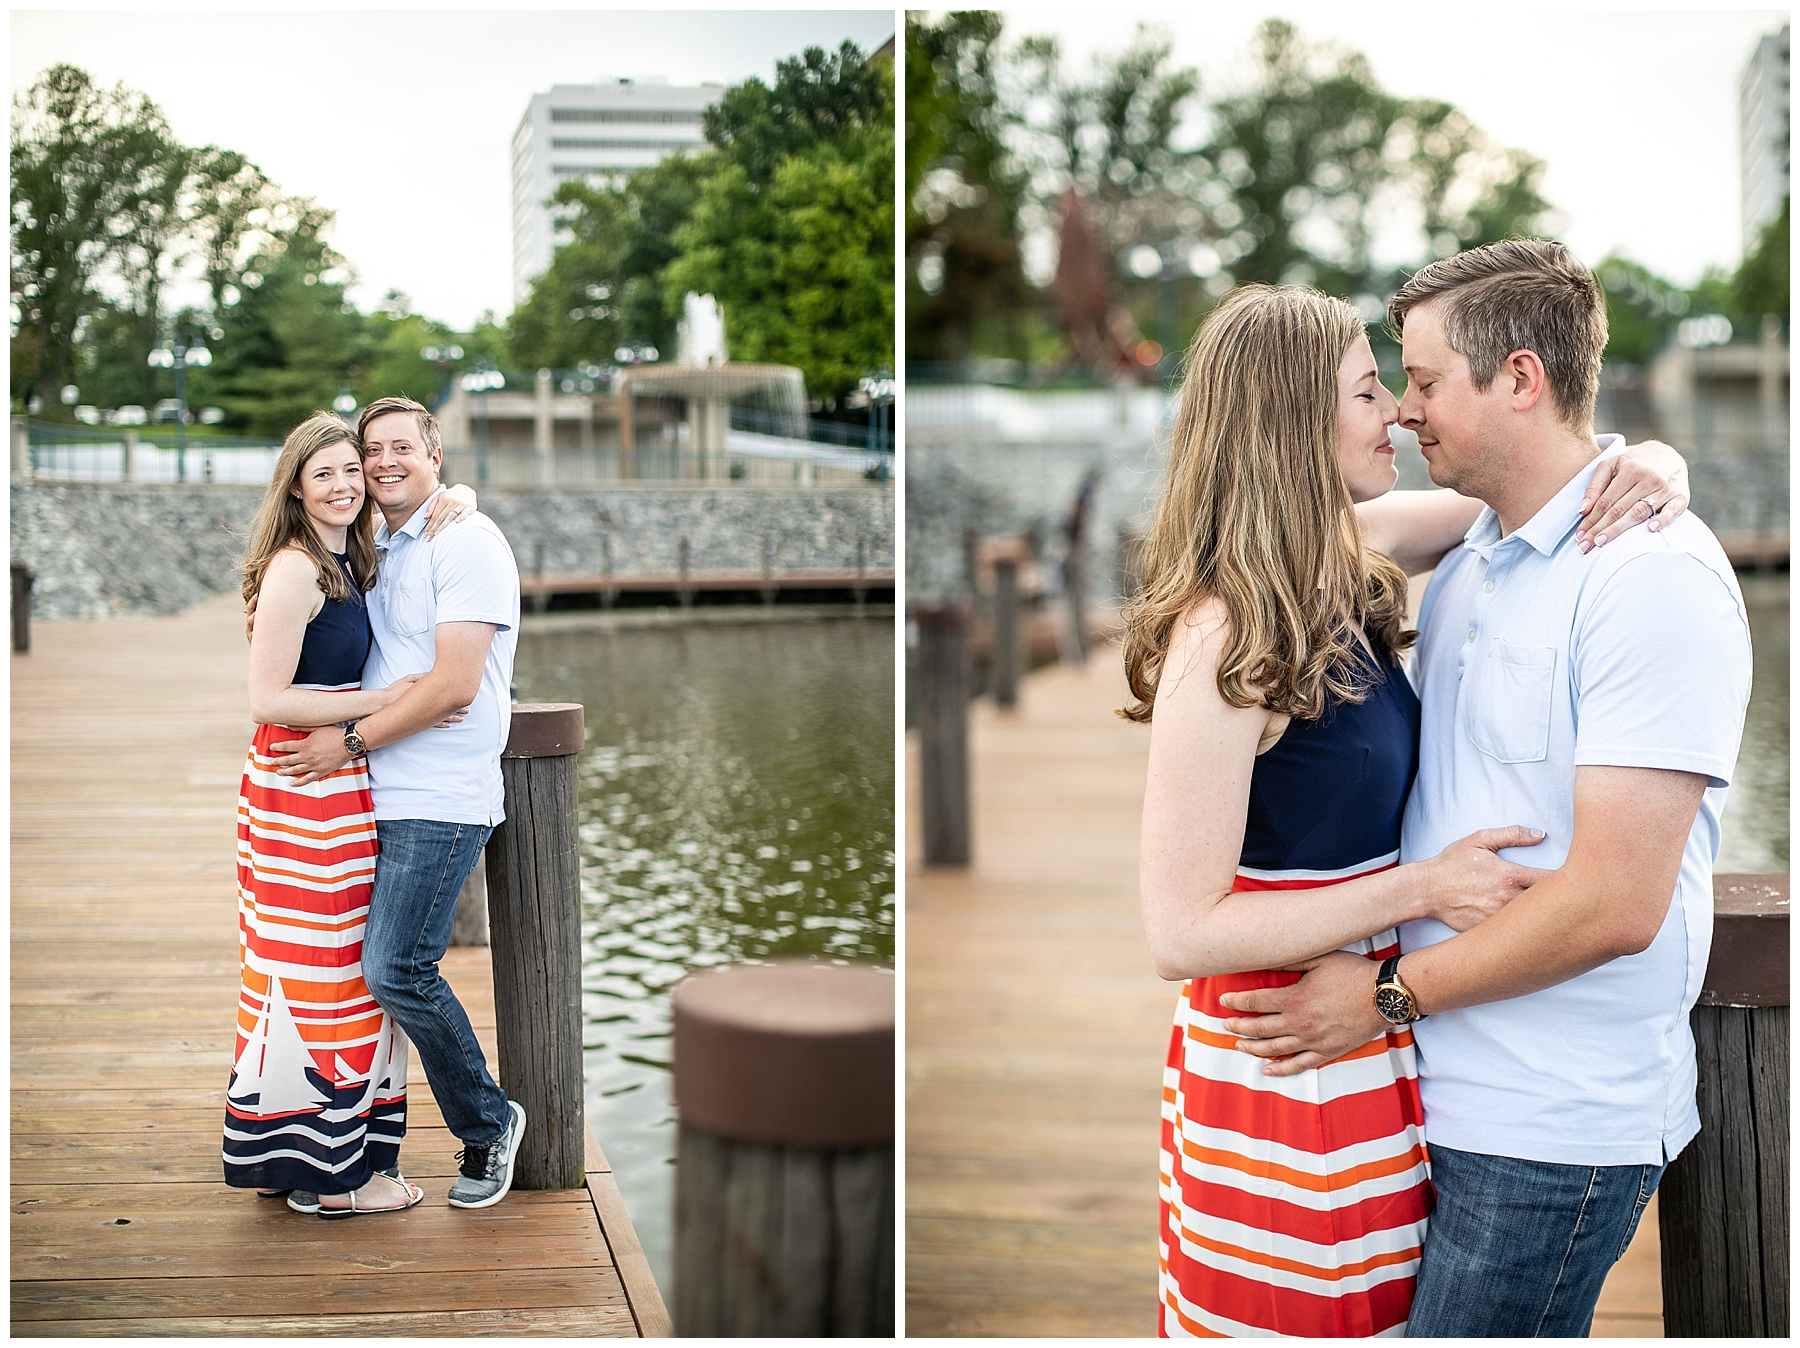 Danielle Shane Columbia Engagement Session Living Radiant Photography photos_0011.jpg